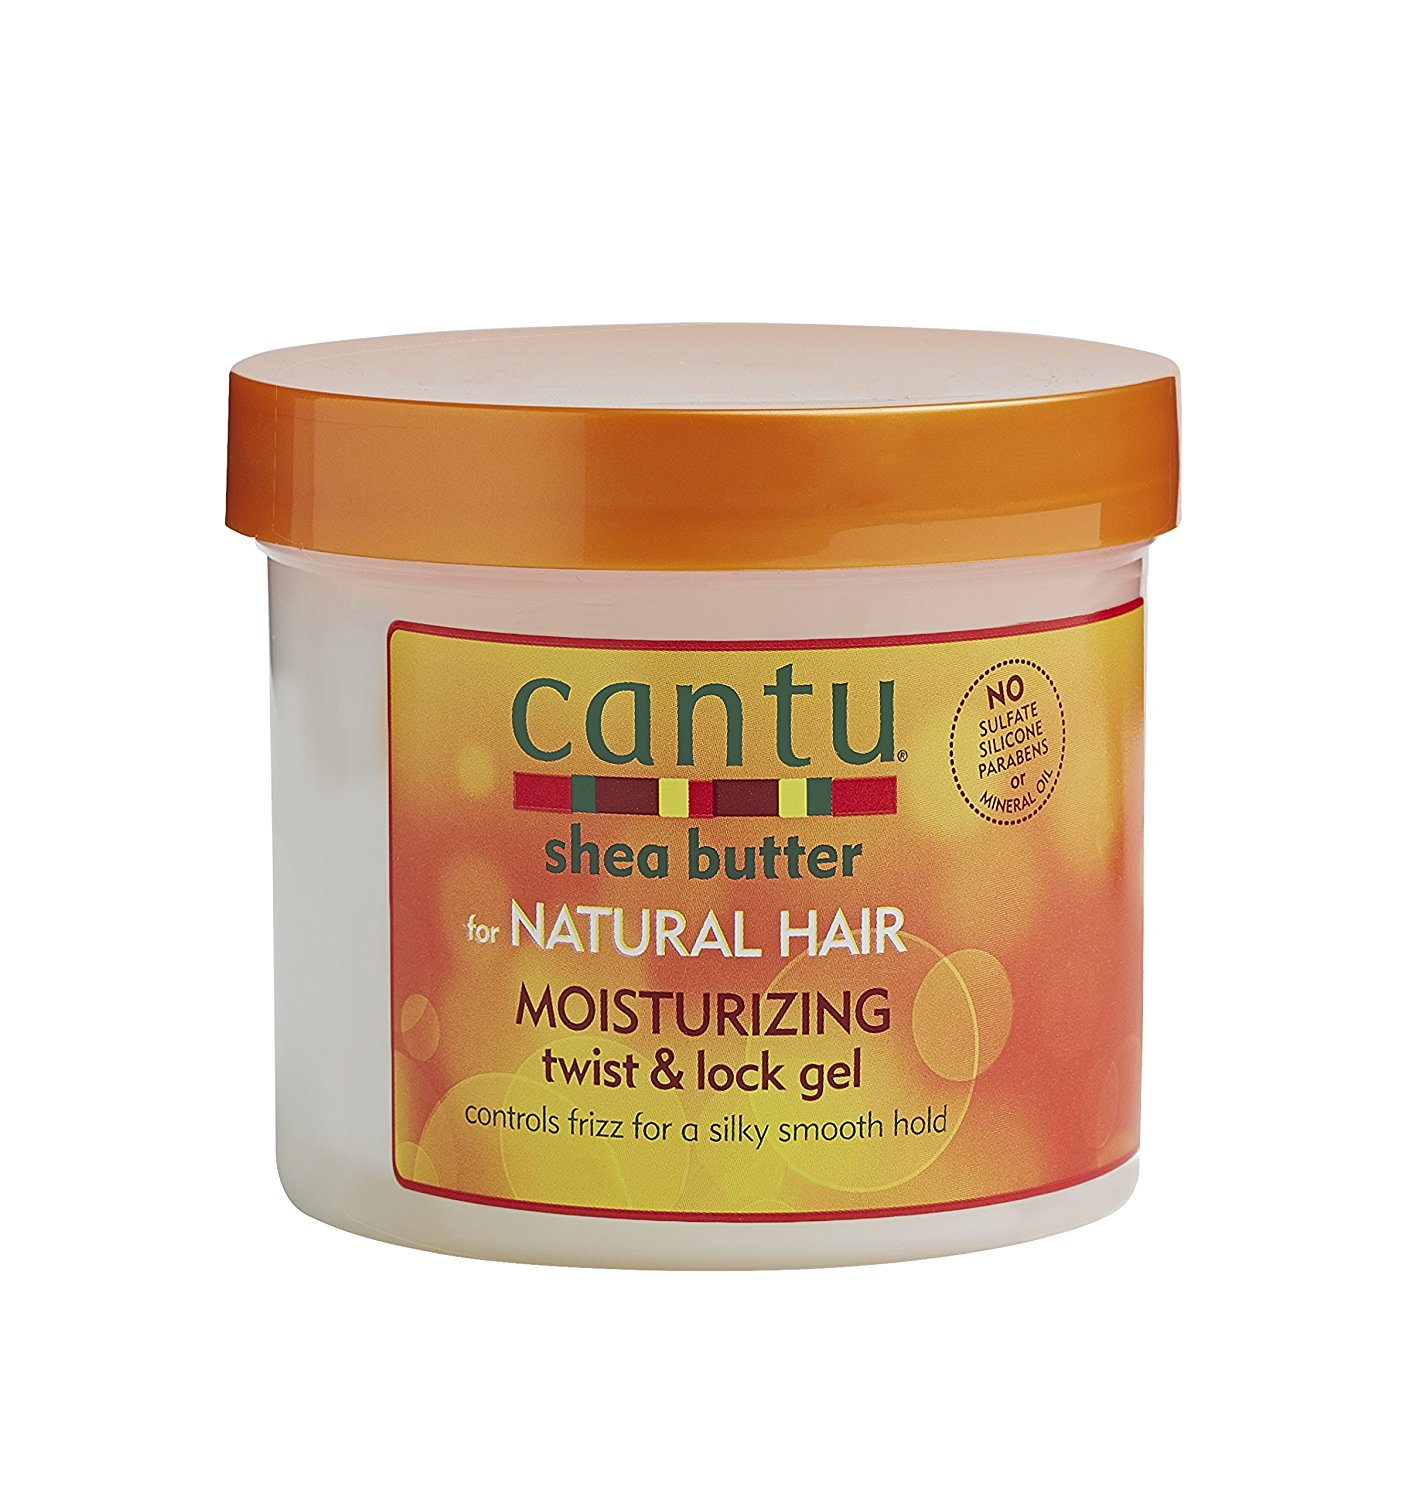 Cantu Shea Butter For Natural Hair Moisturizing Twist & Lock Gel, 13 Ounce